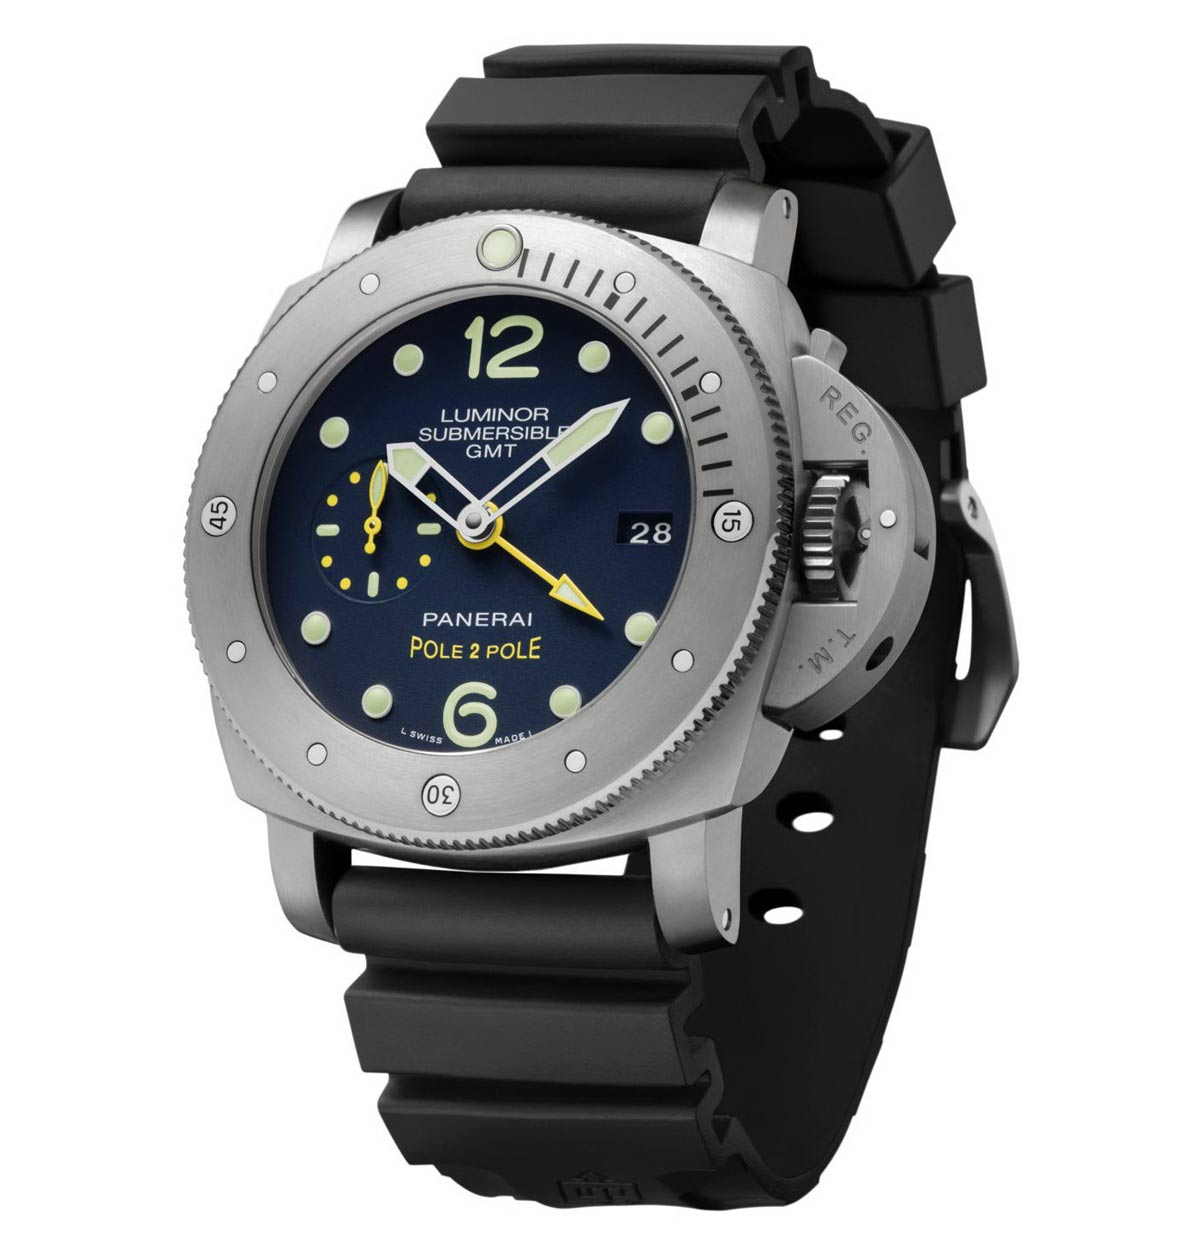 Officine Panerai Luminor Submersible 1950 3 Days Gmt